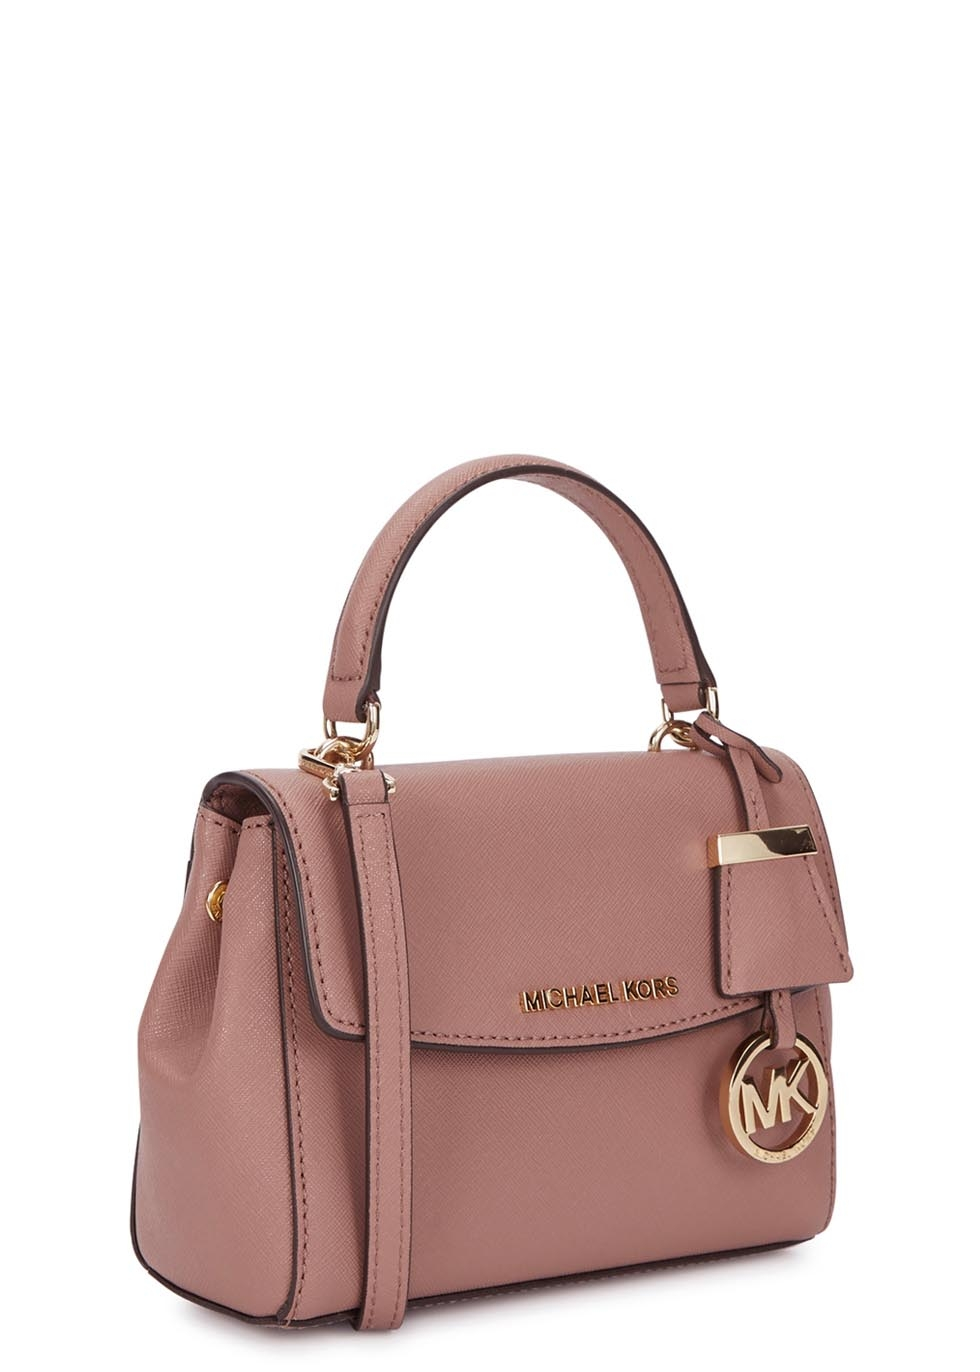 michael kors ava xs dusty rose saffiano leather cross body bag in pink lyst. Black Bedroom Furniture Sets. Home Design Ideas